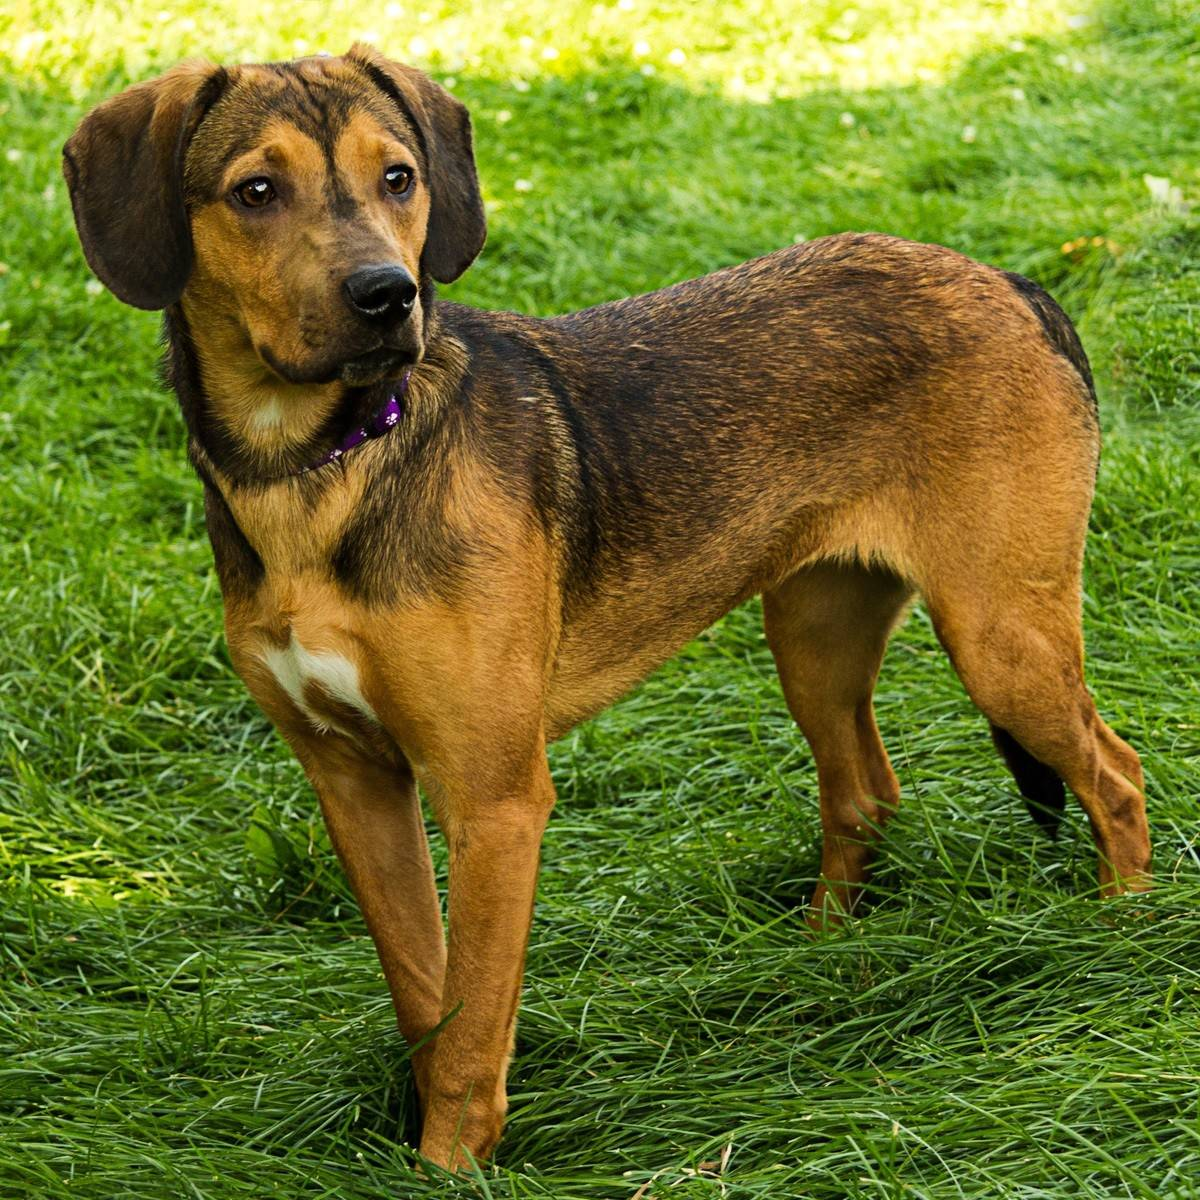 Ivy, a hound mix, is about 7 months old and weighs 33 pounds.